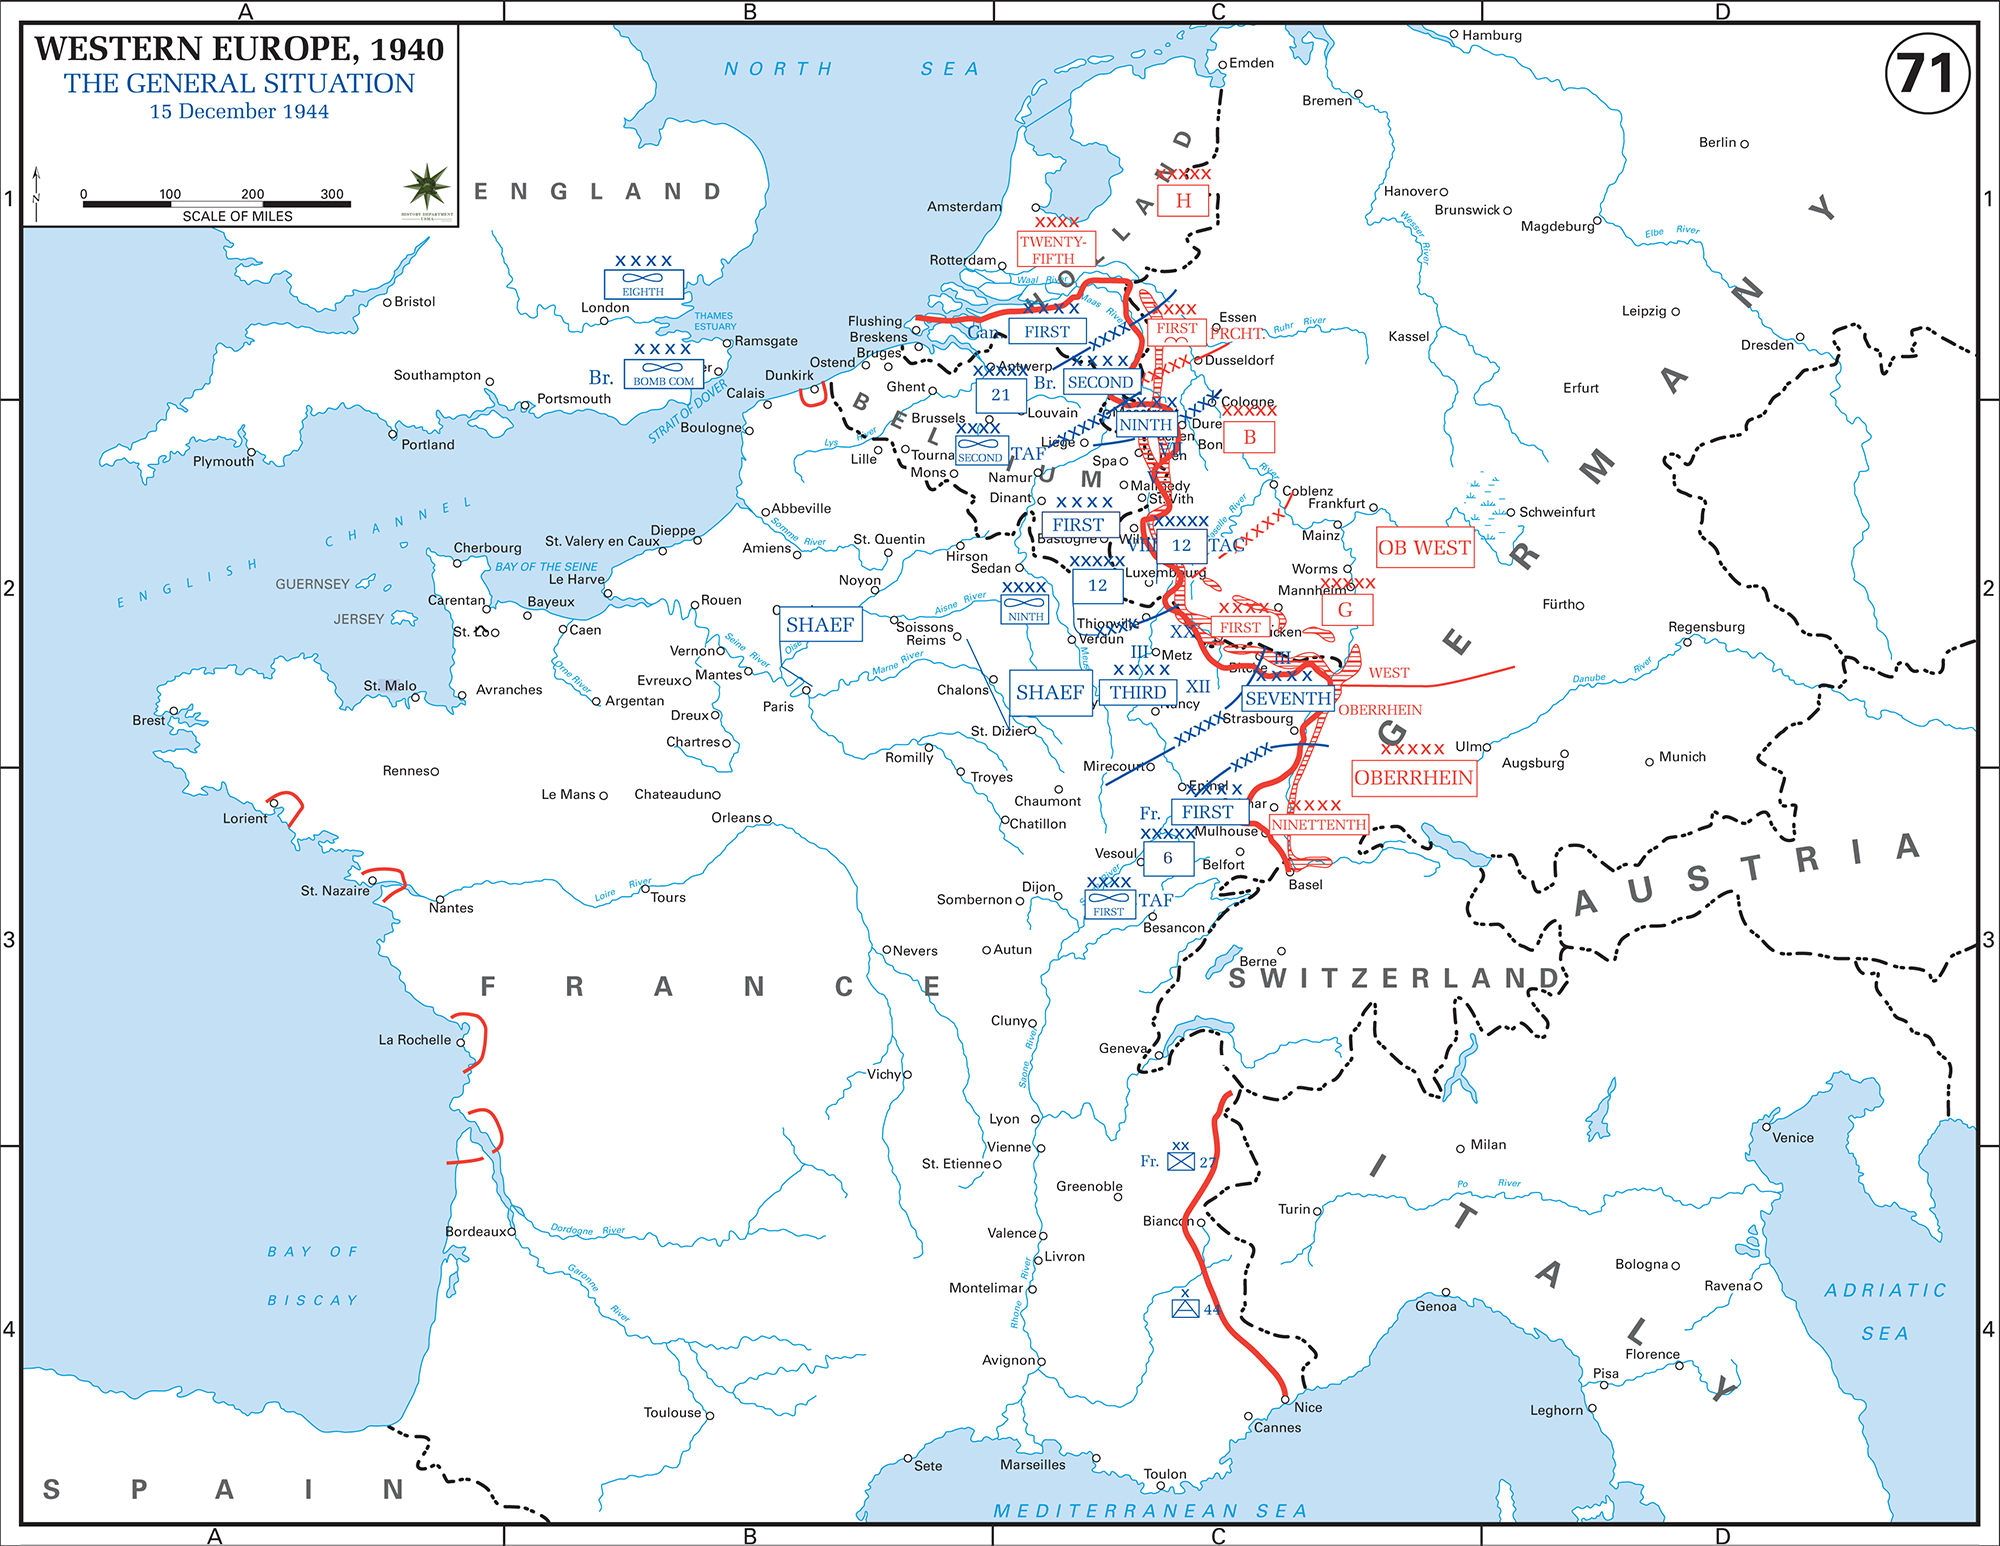 Map Of Wwii Western Europe On Dec 15 1944